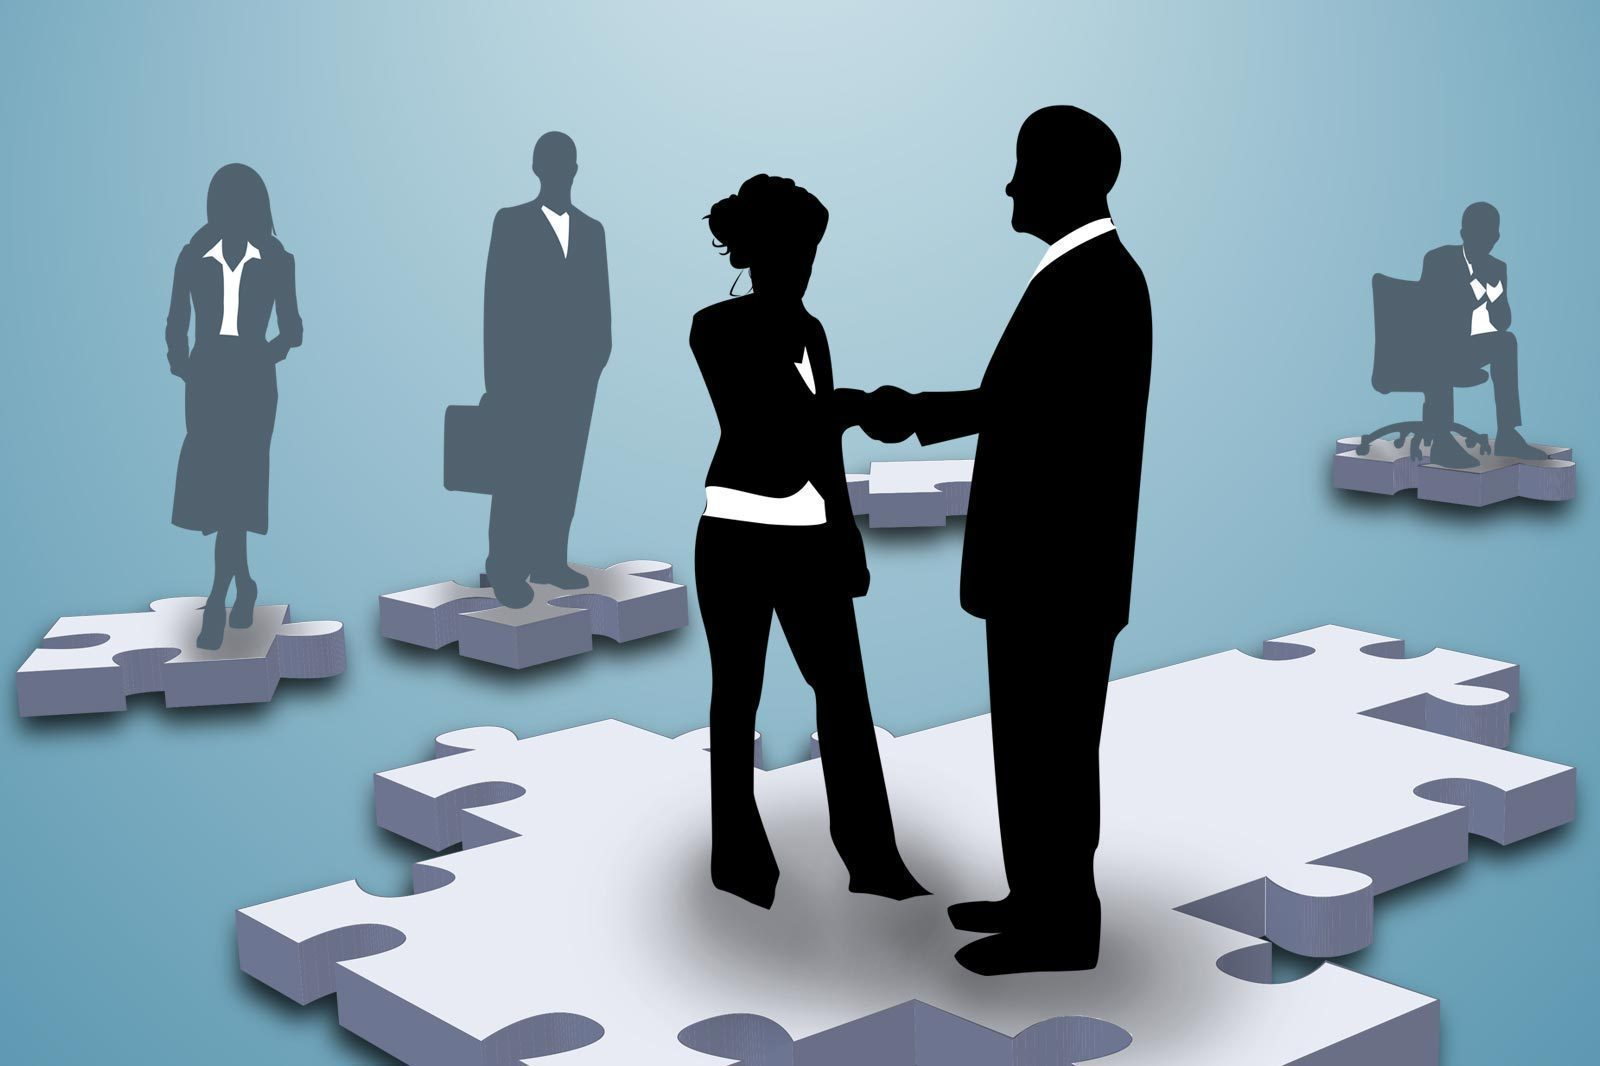 manager dating employee policy Experts say companies should define their policies around co-workers dating, particularly when it comes to managers dating subordinates.